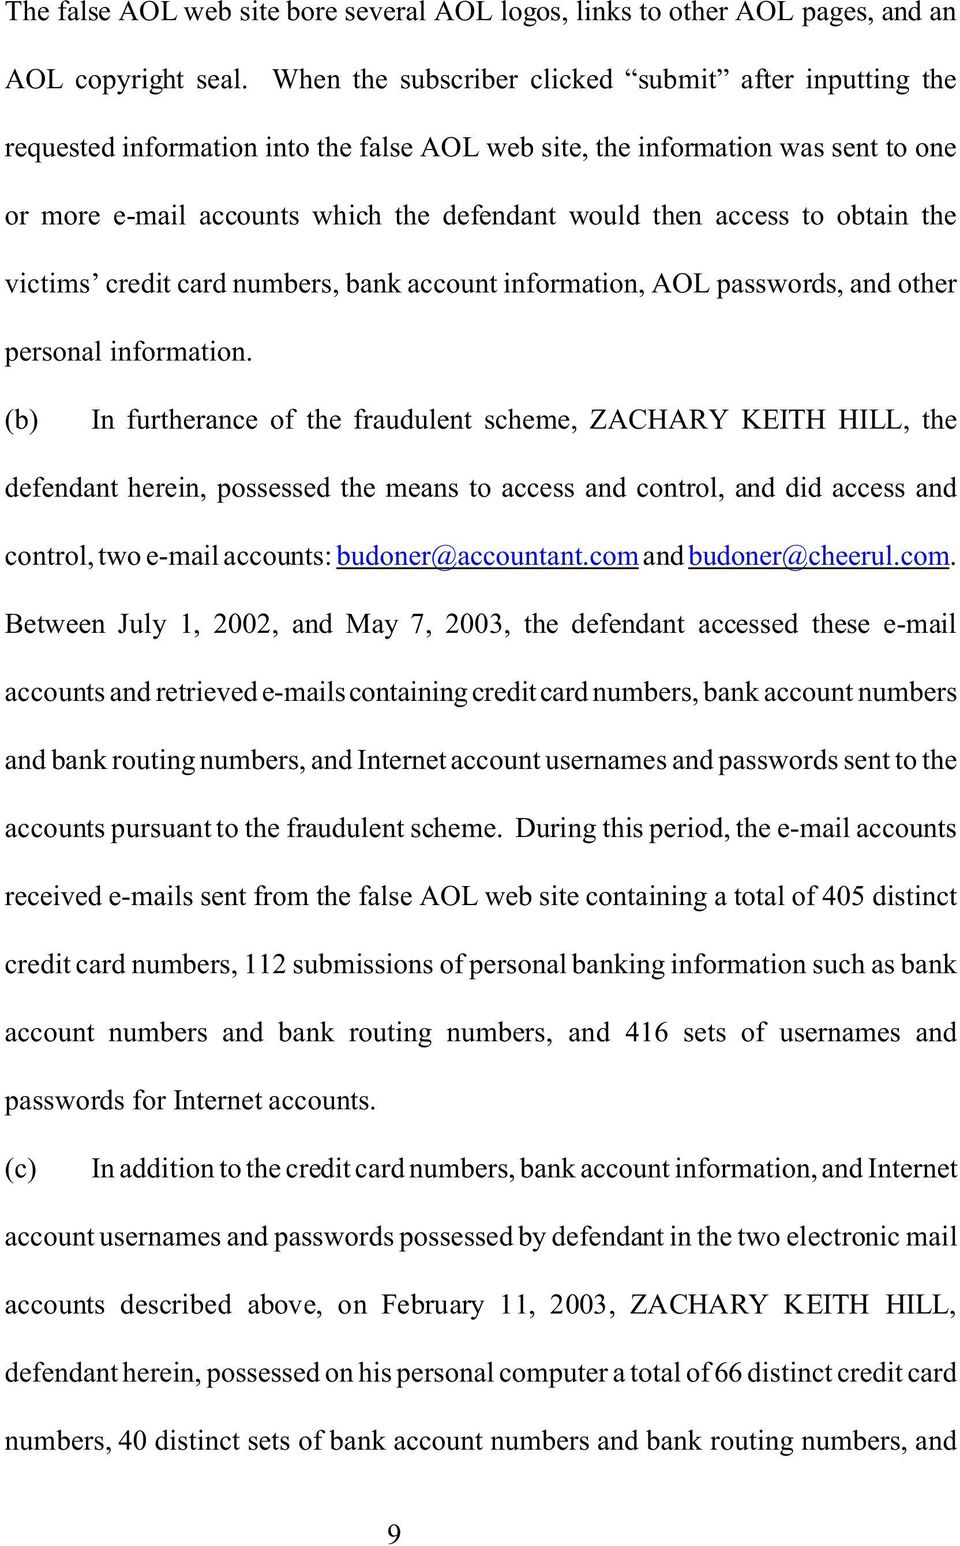 to obtain the victims credit card numbers, bank account information, AOL passwords, and other personal information.